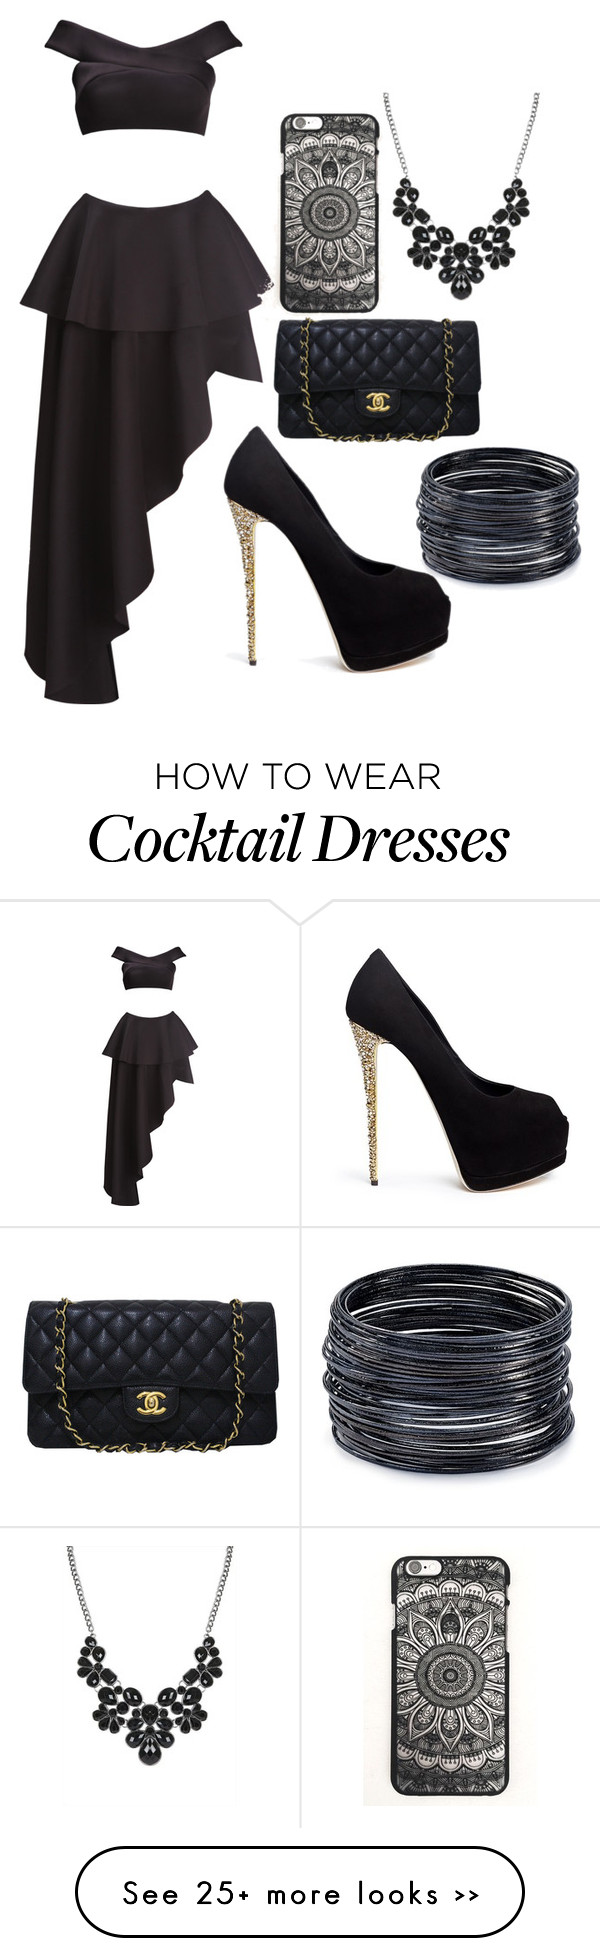 """UNTITLED # 118"" by arianagrande1230 on Polyvore featuring Fame & Partners, Giuseppe Zanotti, Chanel and ABS by Allen Schwartz"